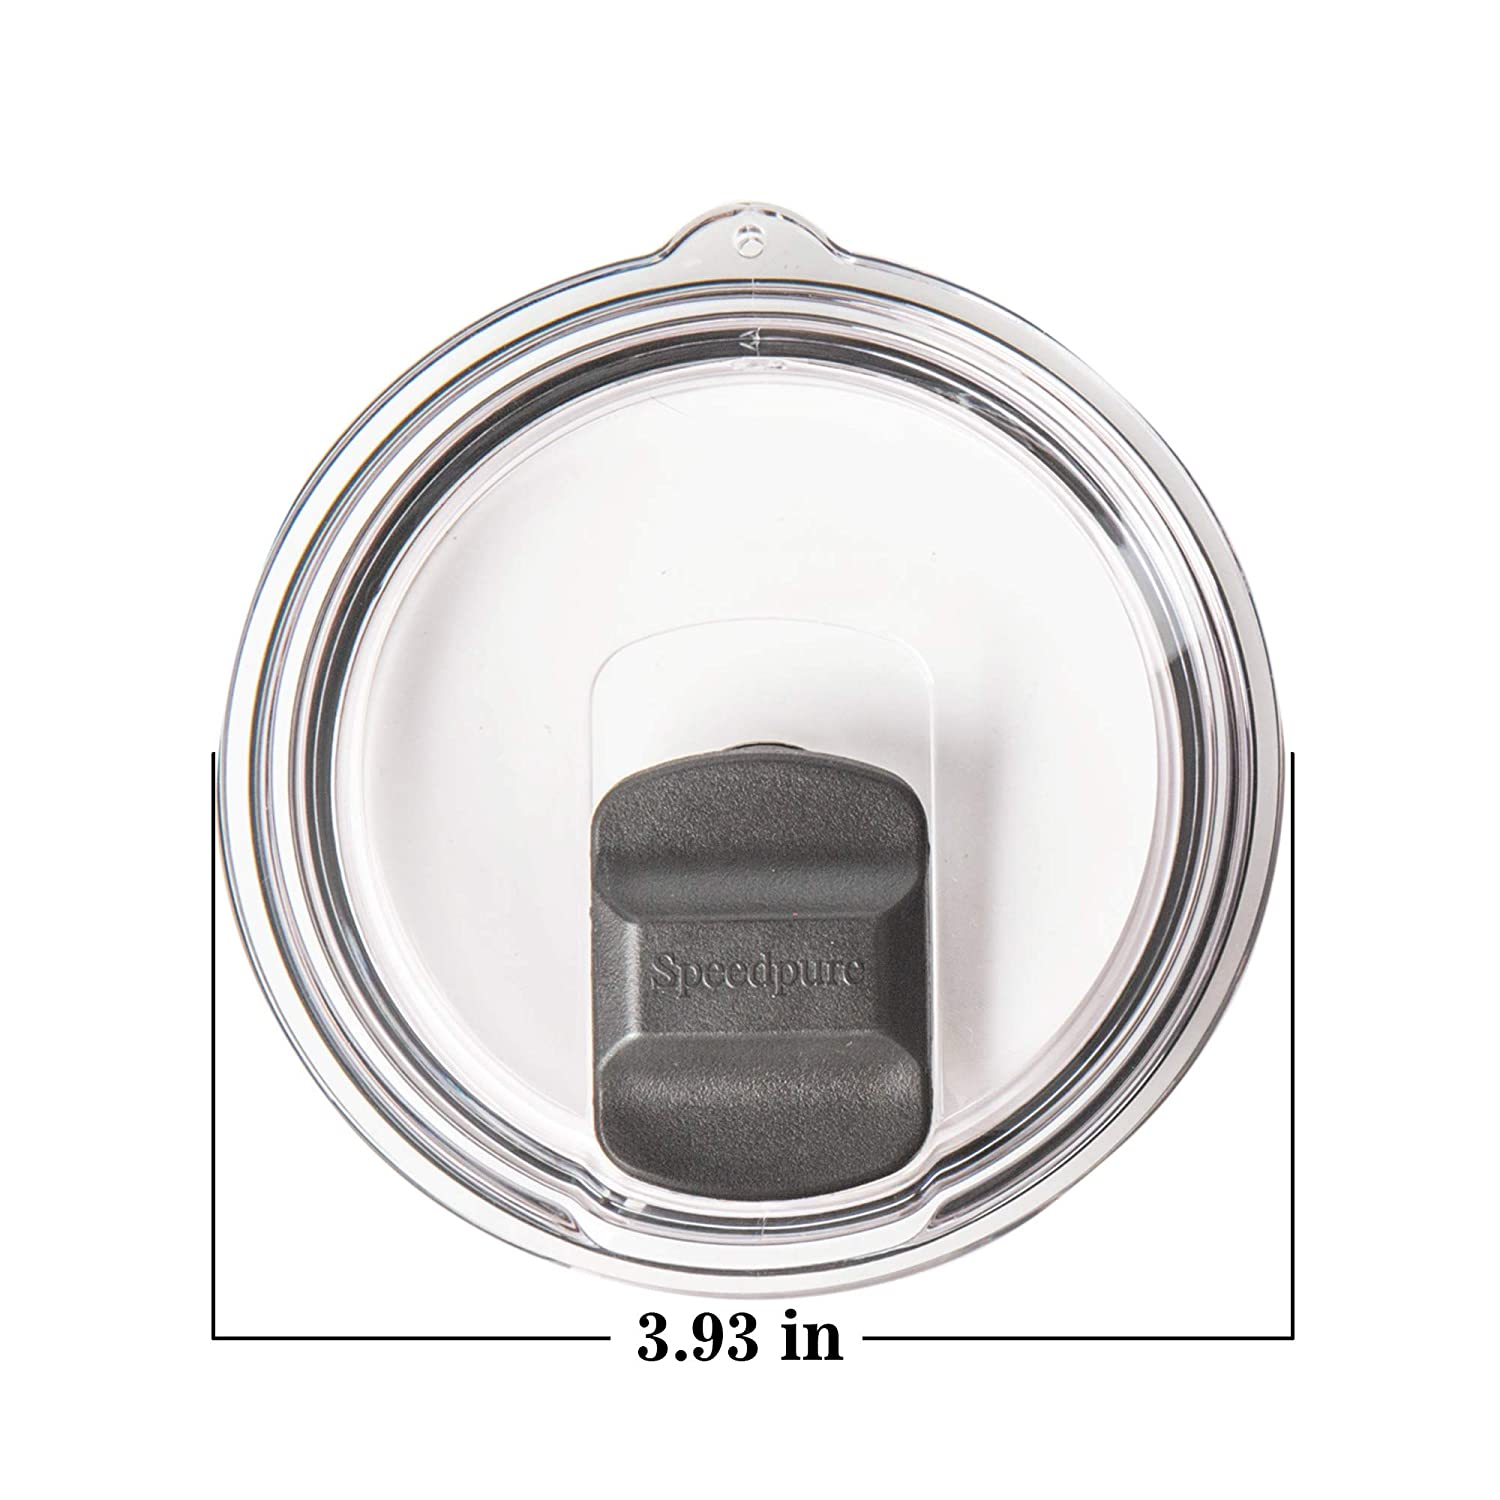 5c1d69b0b1a Magnetic Lid 30 oz Splash Proof - Fits for Yeti Rambler, Ozark Trail, Old  Style Rtic and More, Spill-Proof Splash Resistant Lid Covers for Tumblers  ...